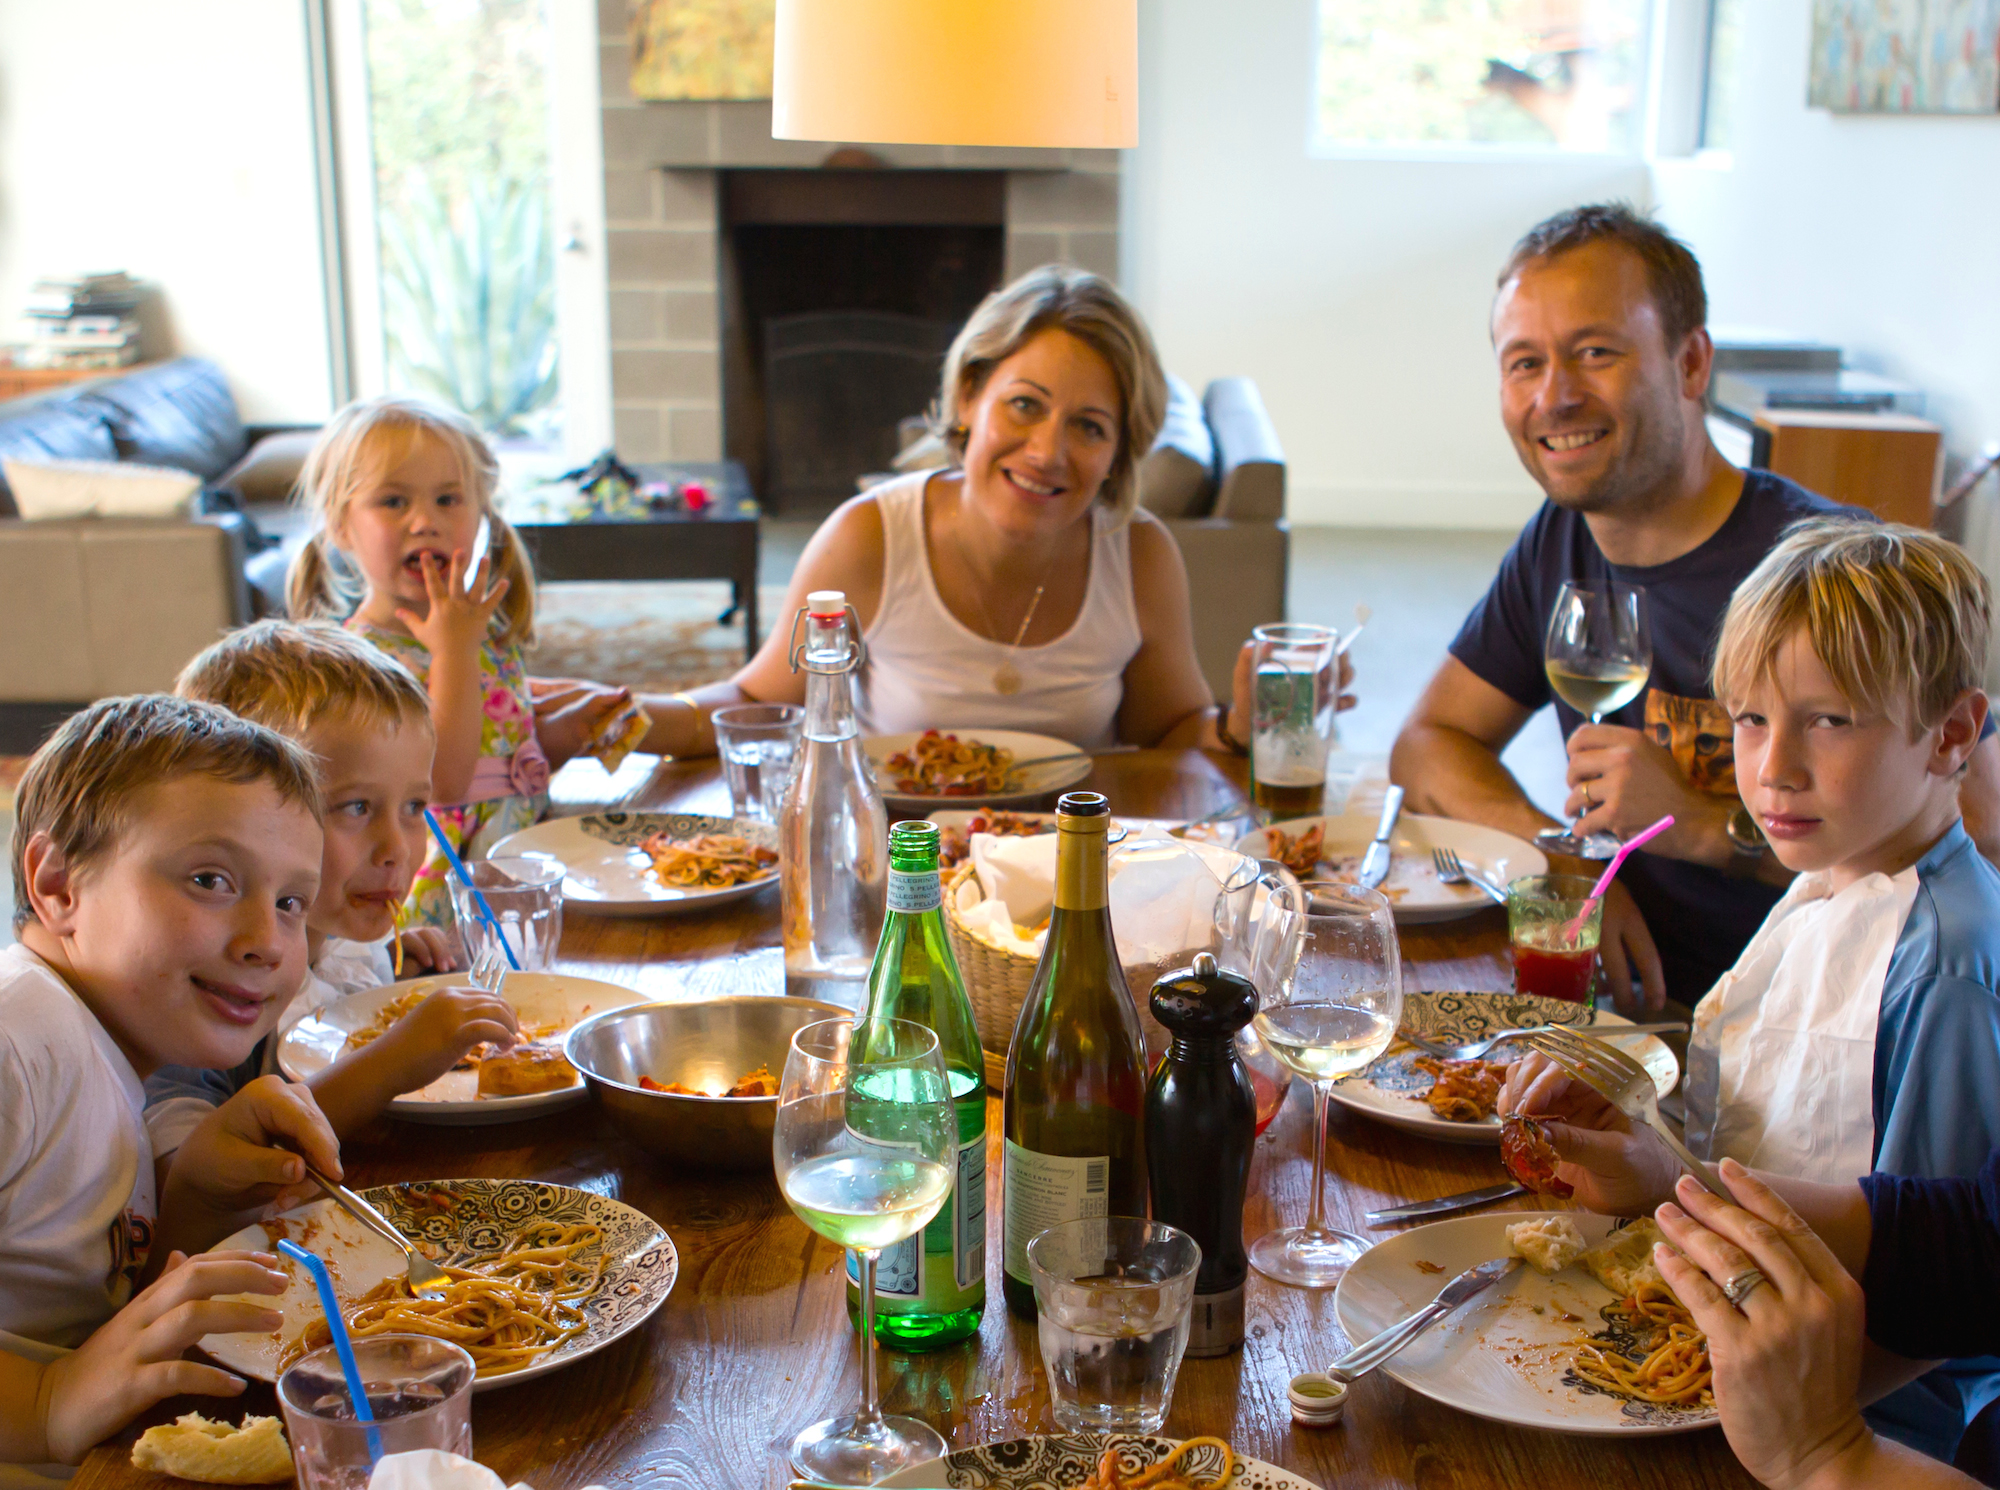 Fantastic 5 Steps To Keep Kids At The Table Blog Post Countryside Download Free Architecture Designs Embacsunscenecom